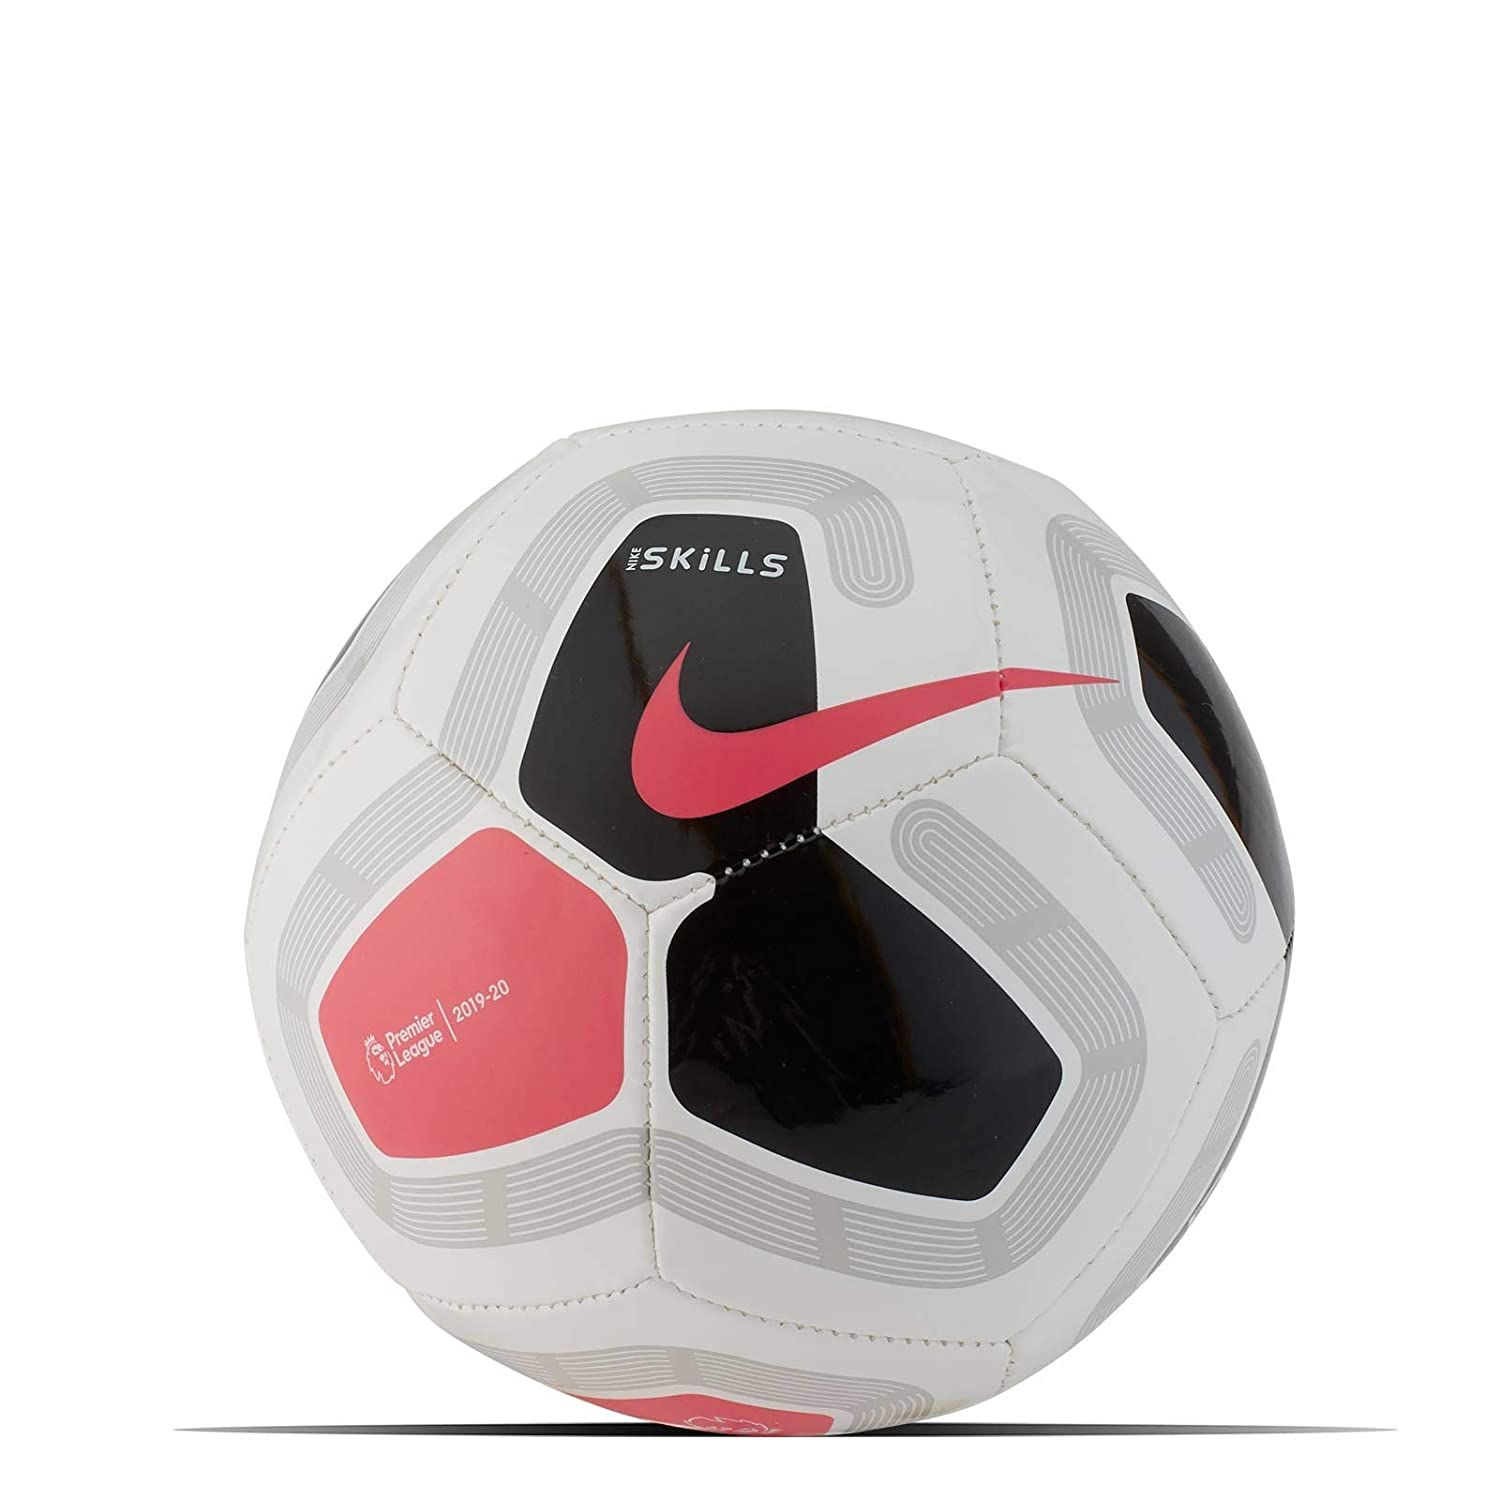 Nike English Premier League Skills Balón Fútbol Sala Infantil ...